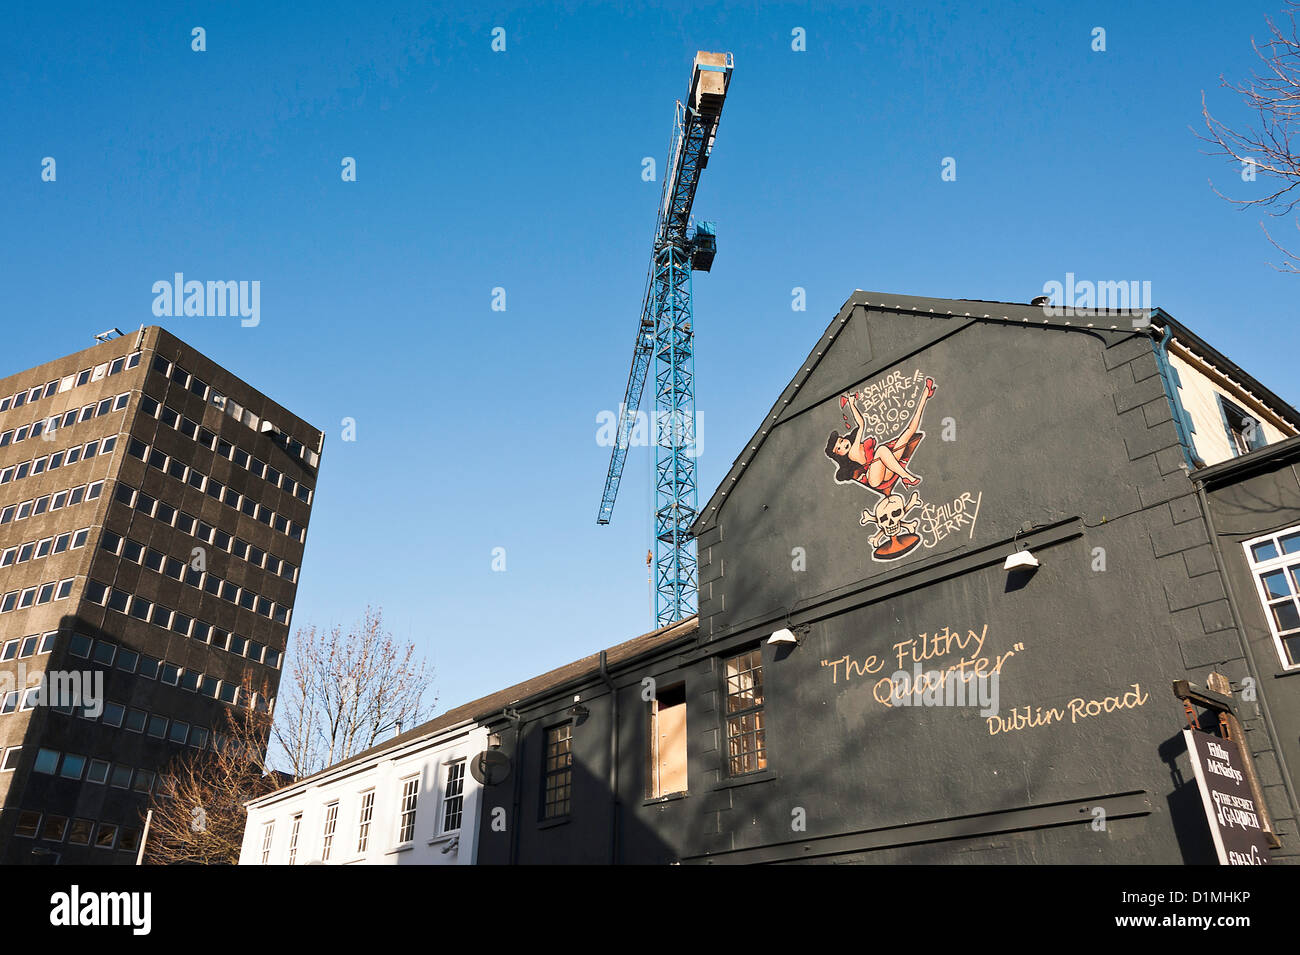 Filthy McNasty's Public House in Dublin Road Belfast County Antrim Northern Ireland United Kingdom UK - Stock Image